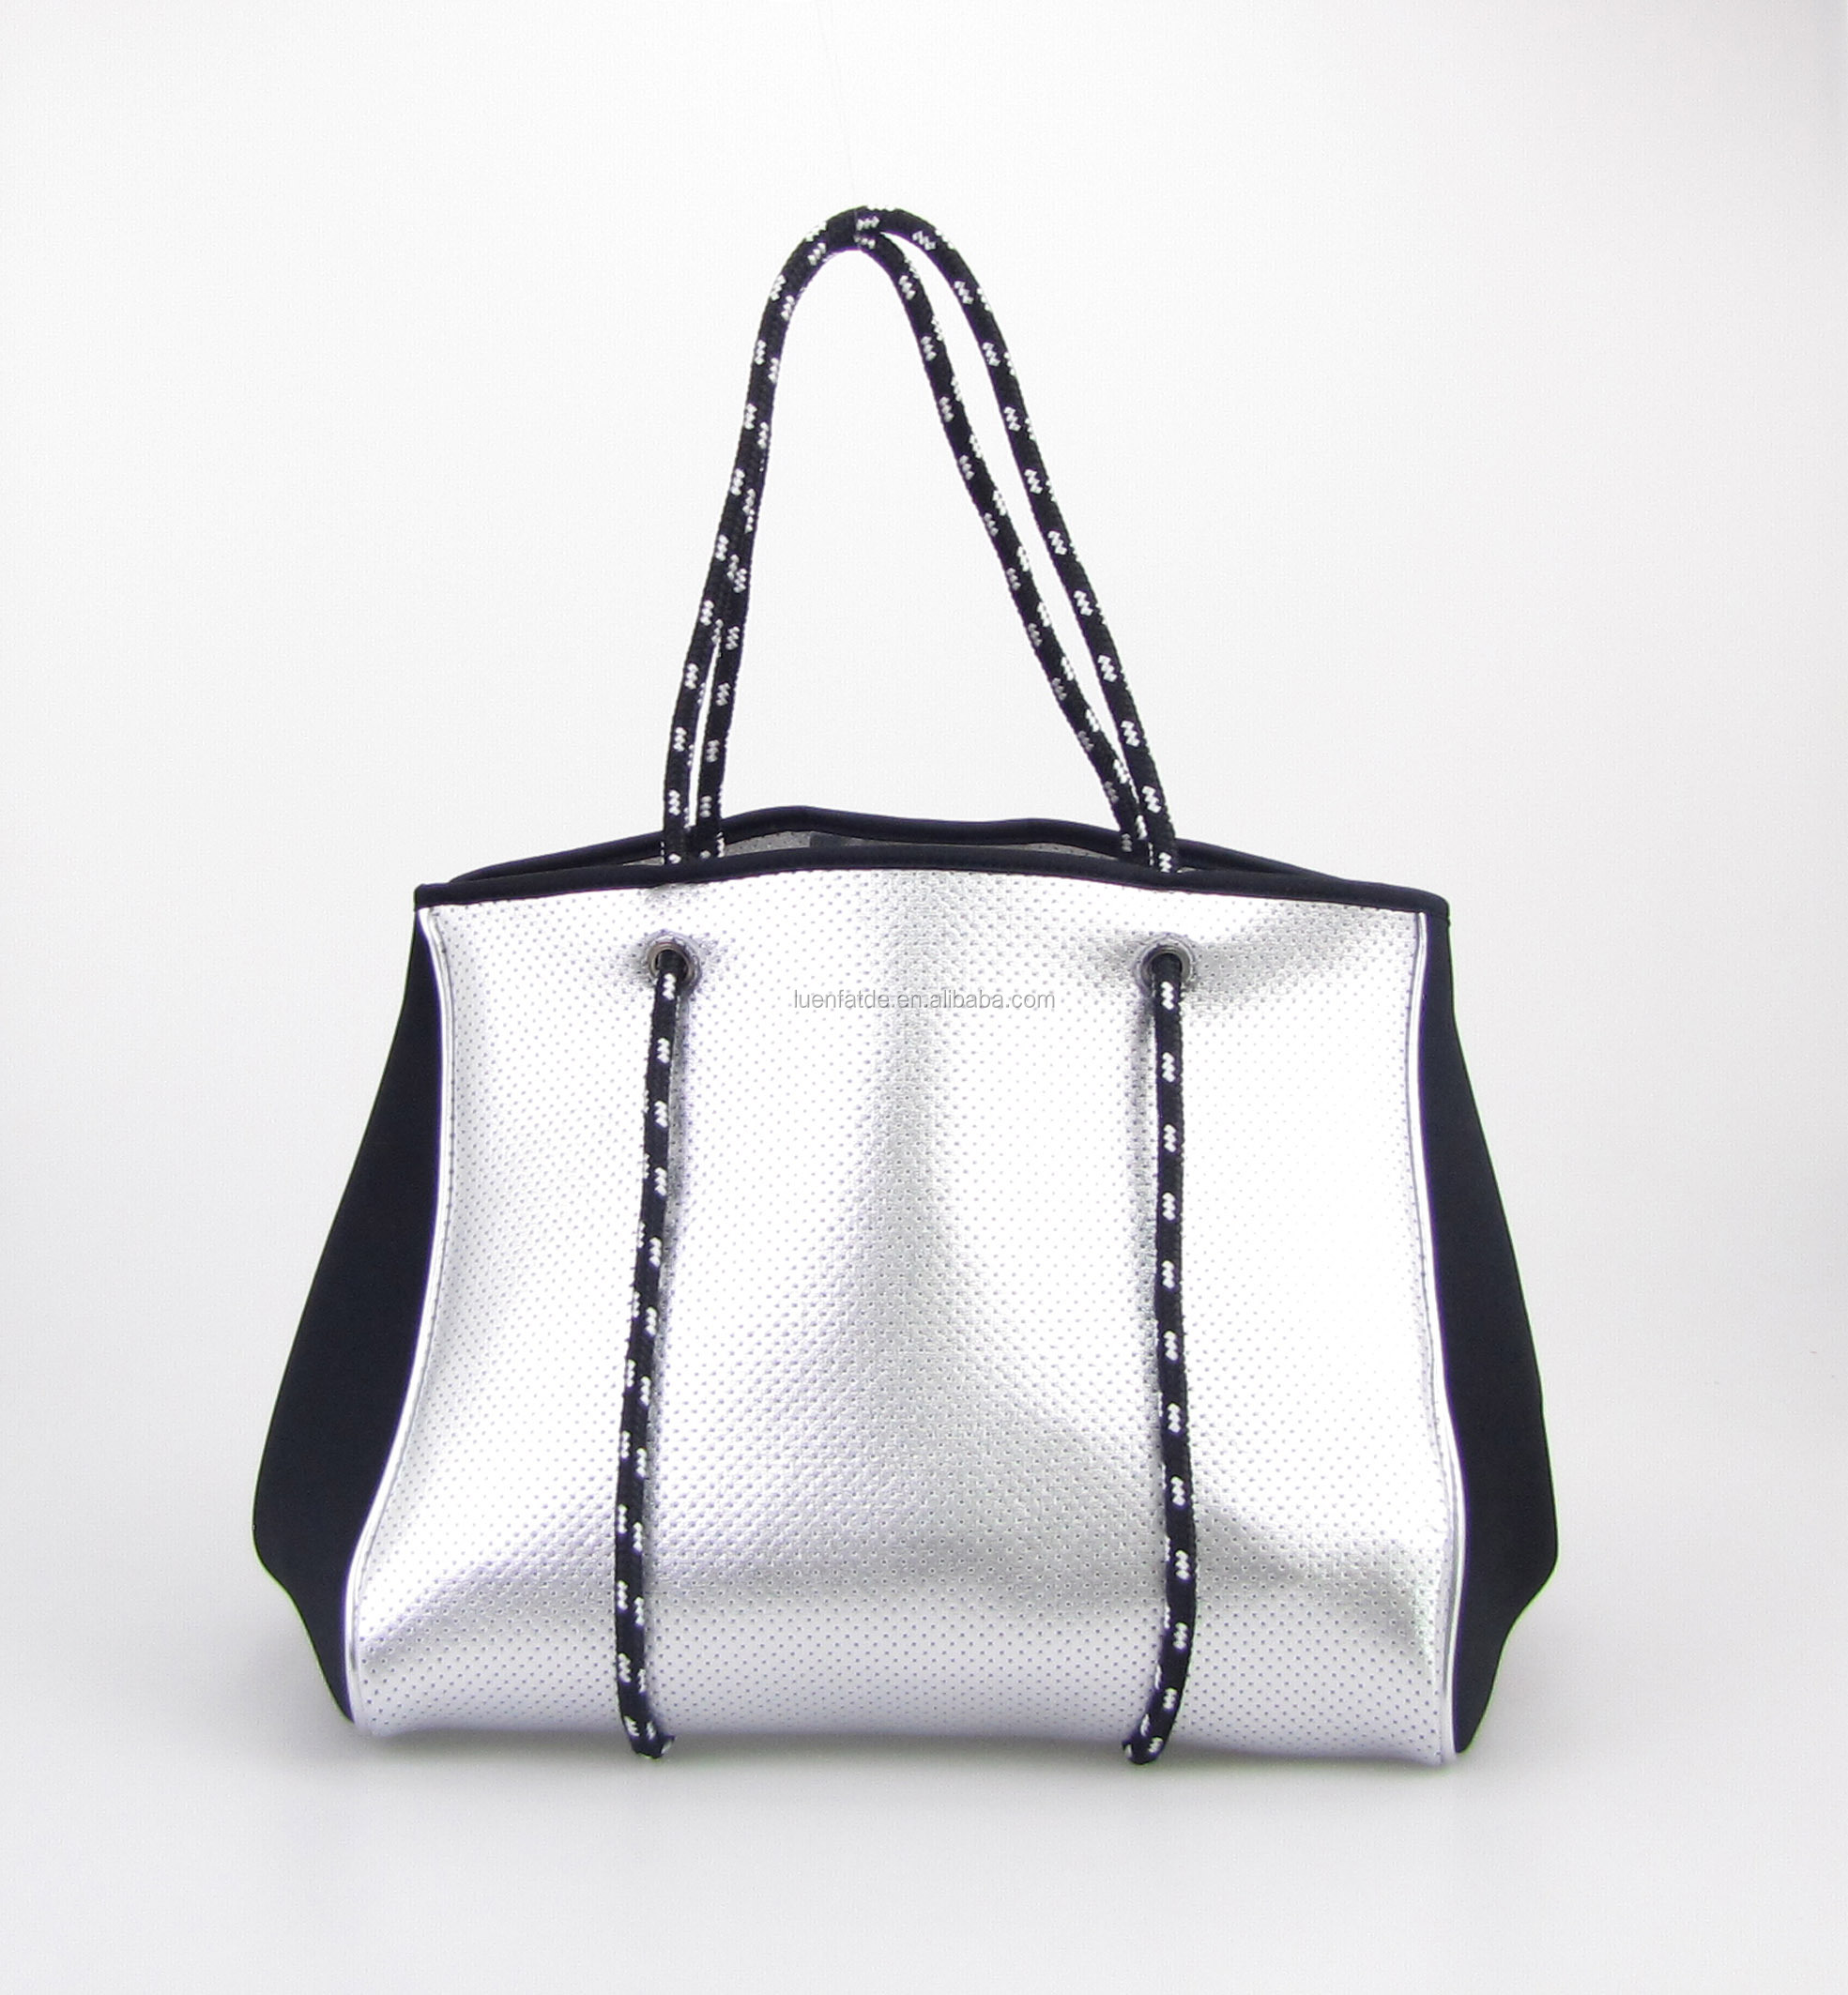 Hot sell Neoprene tote bag shopper for Women